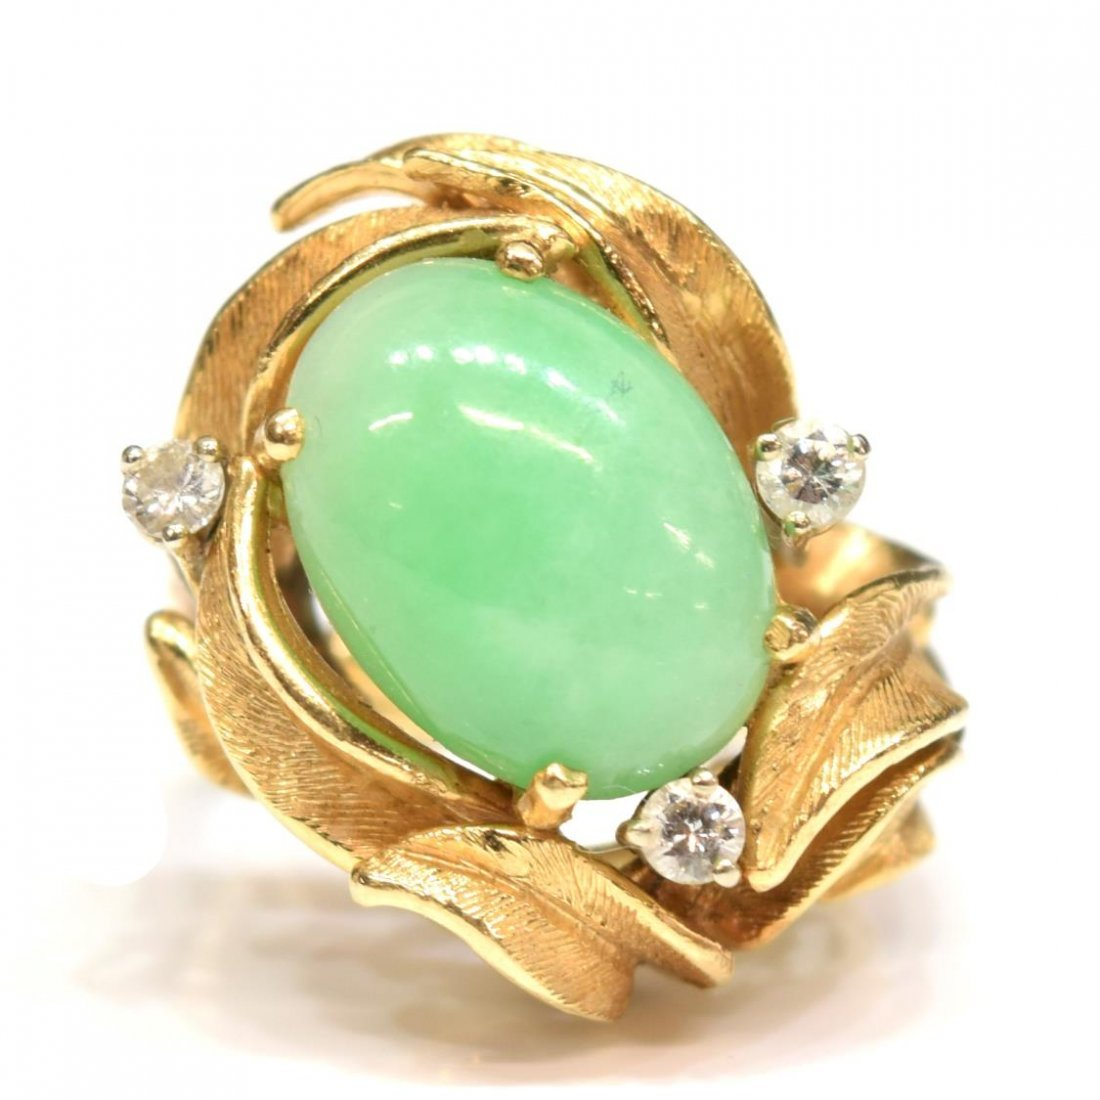 LADIES 14K GOLD JADE AND DIAMOND COCKTAIL RING